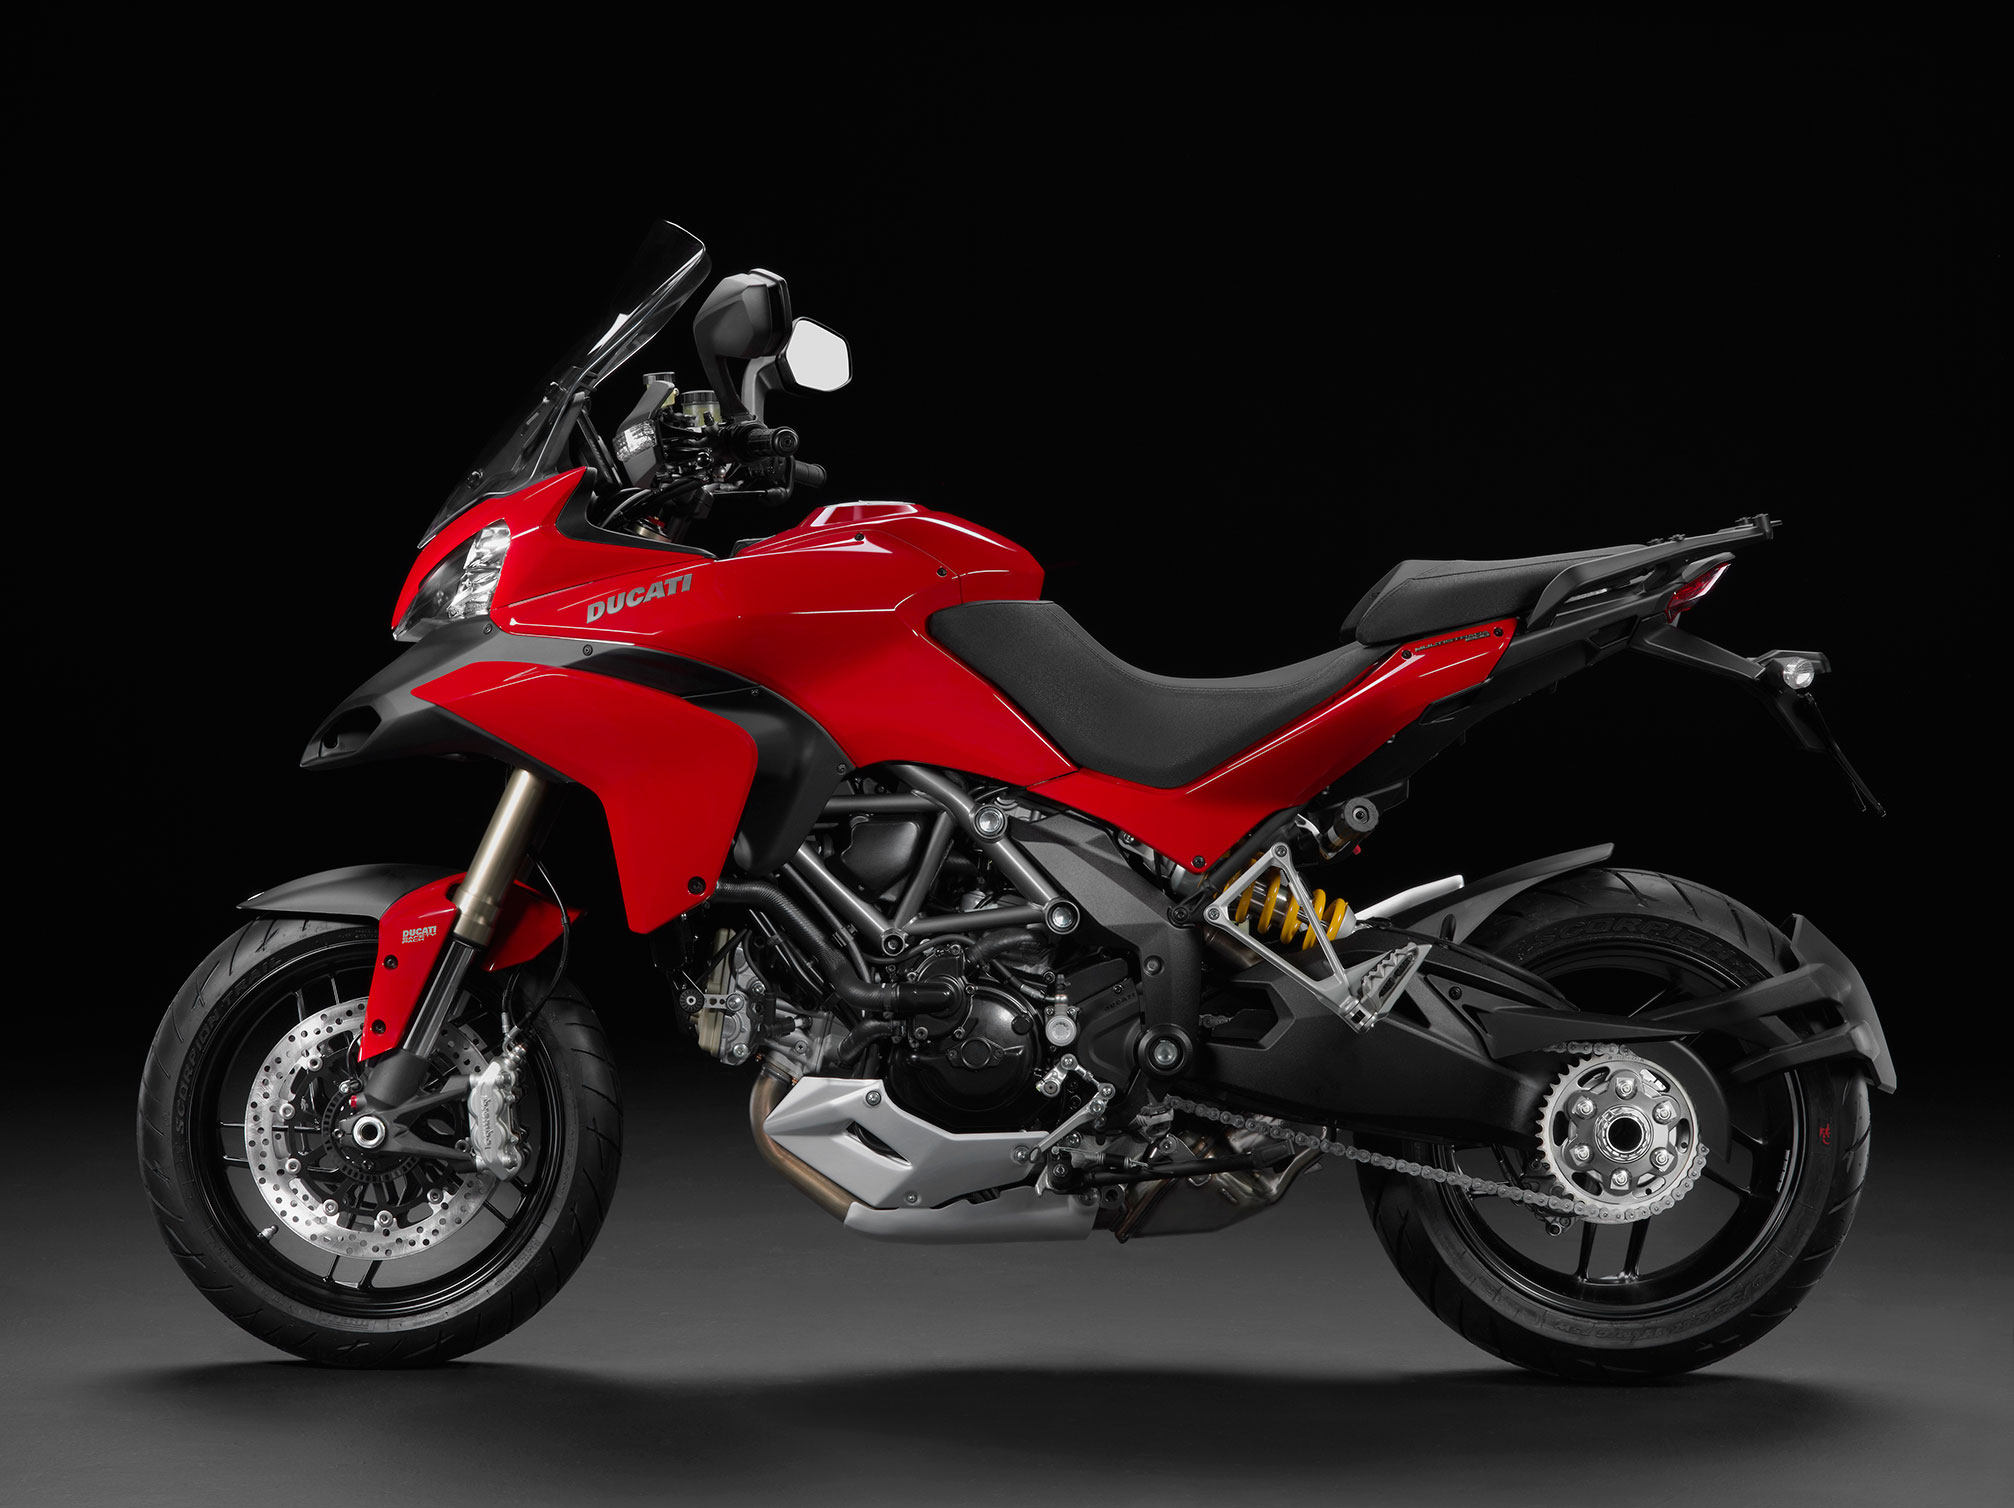 Ducati Multistrada 1200 2014 wallpapers #12926